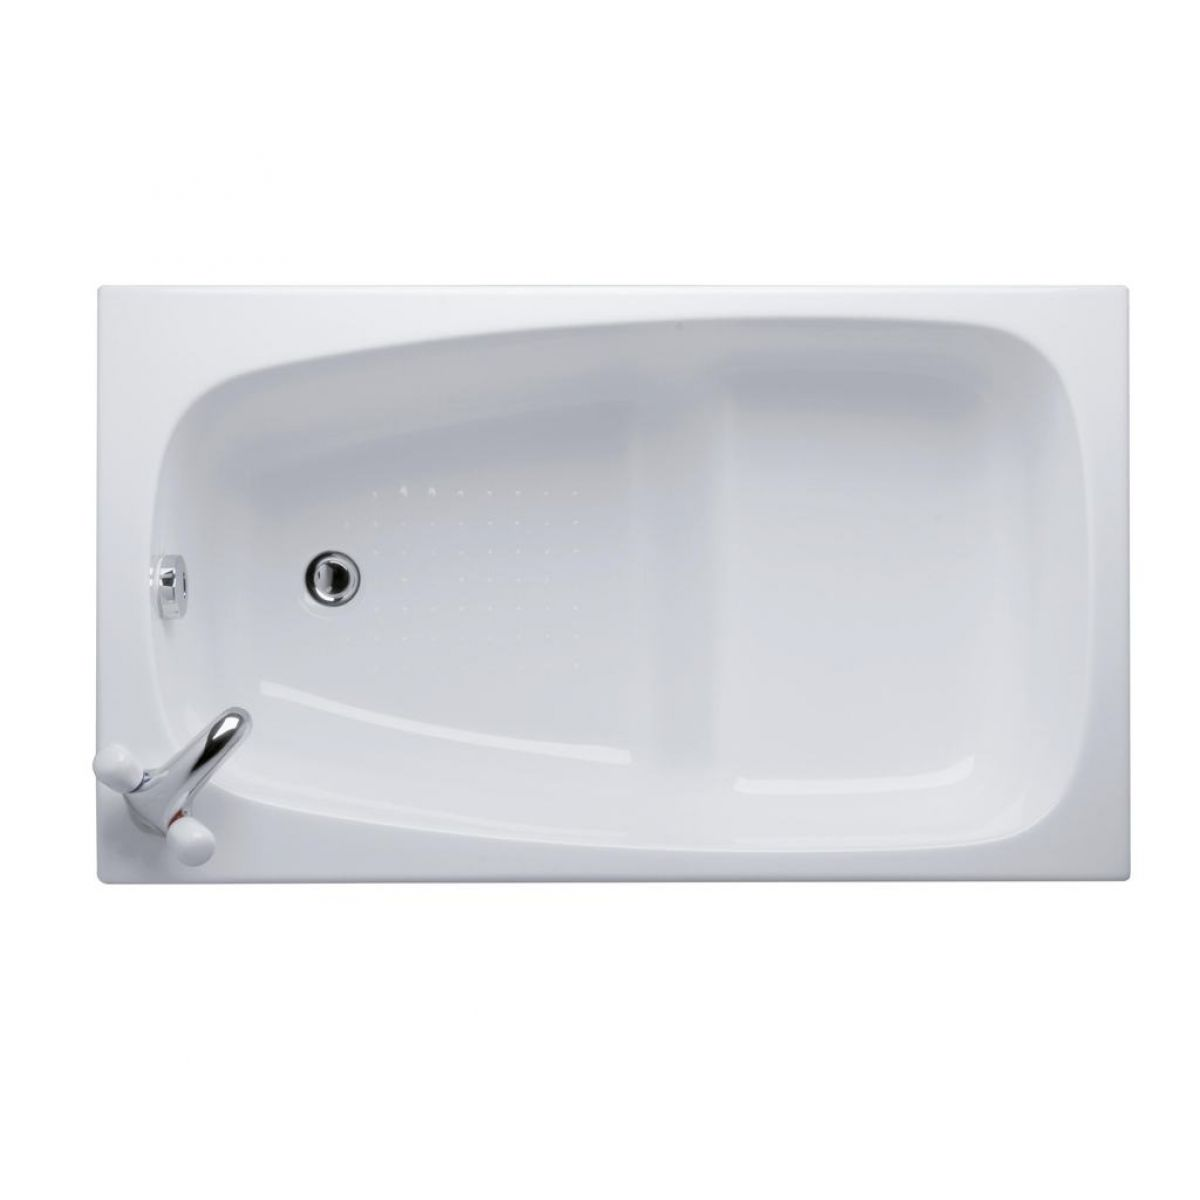 Compact Bath ideal standard space 1200 x 700mm compact bath : uk bathrooms